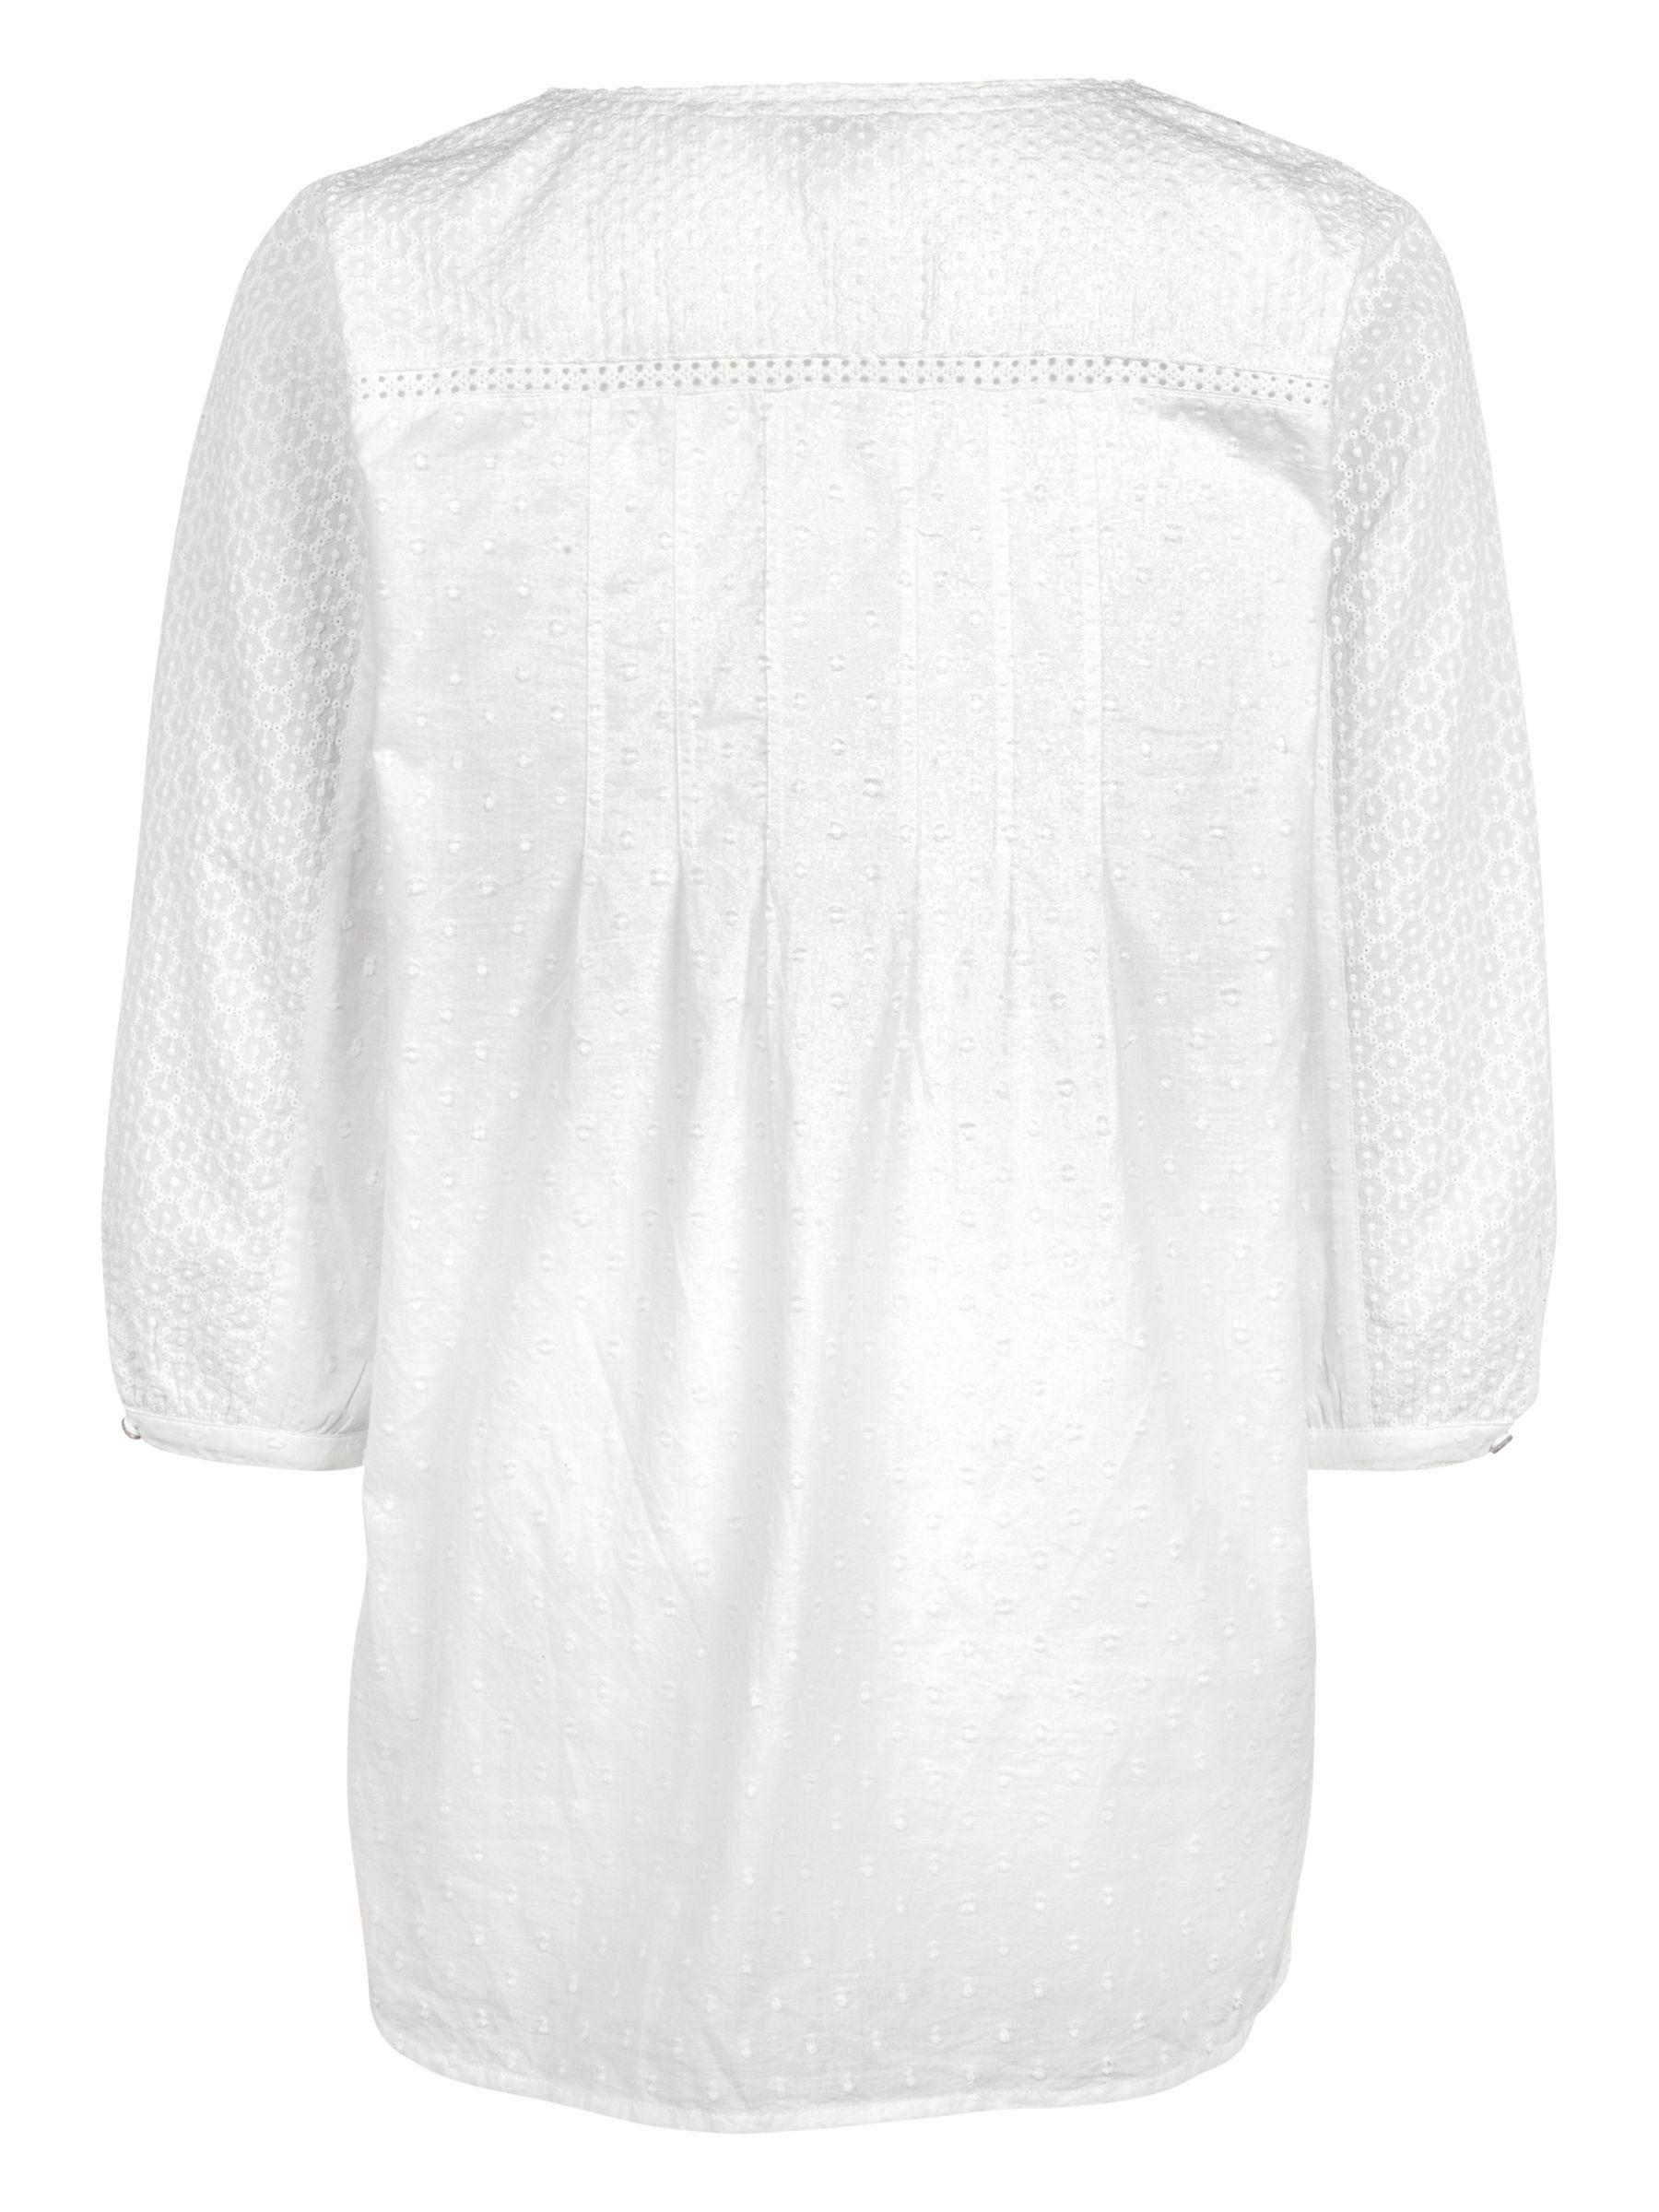 3f9043fb8e45d4 John Lewis Fat Face Phoebe Broderie Popover Blouse in White - Lyst